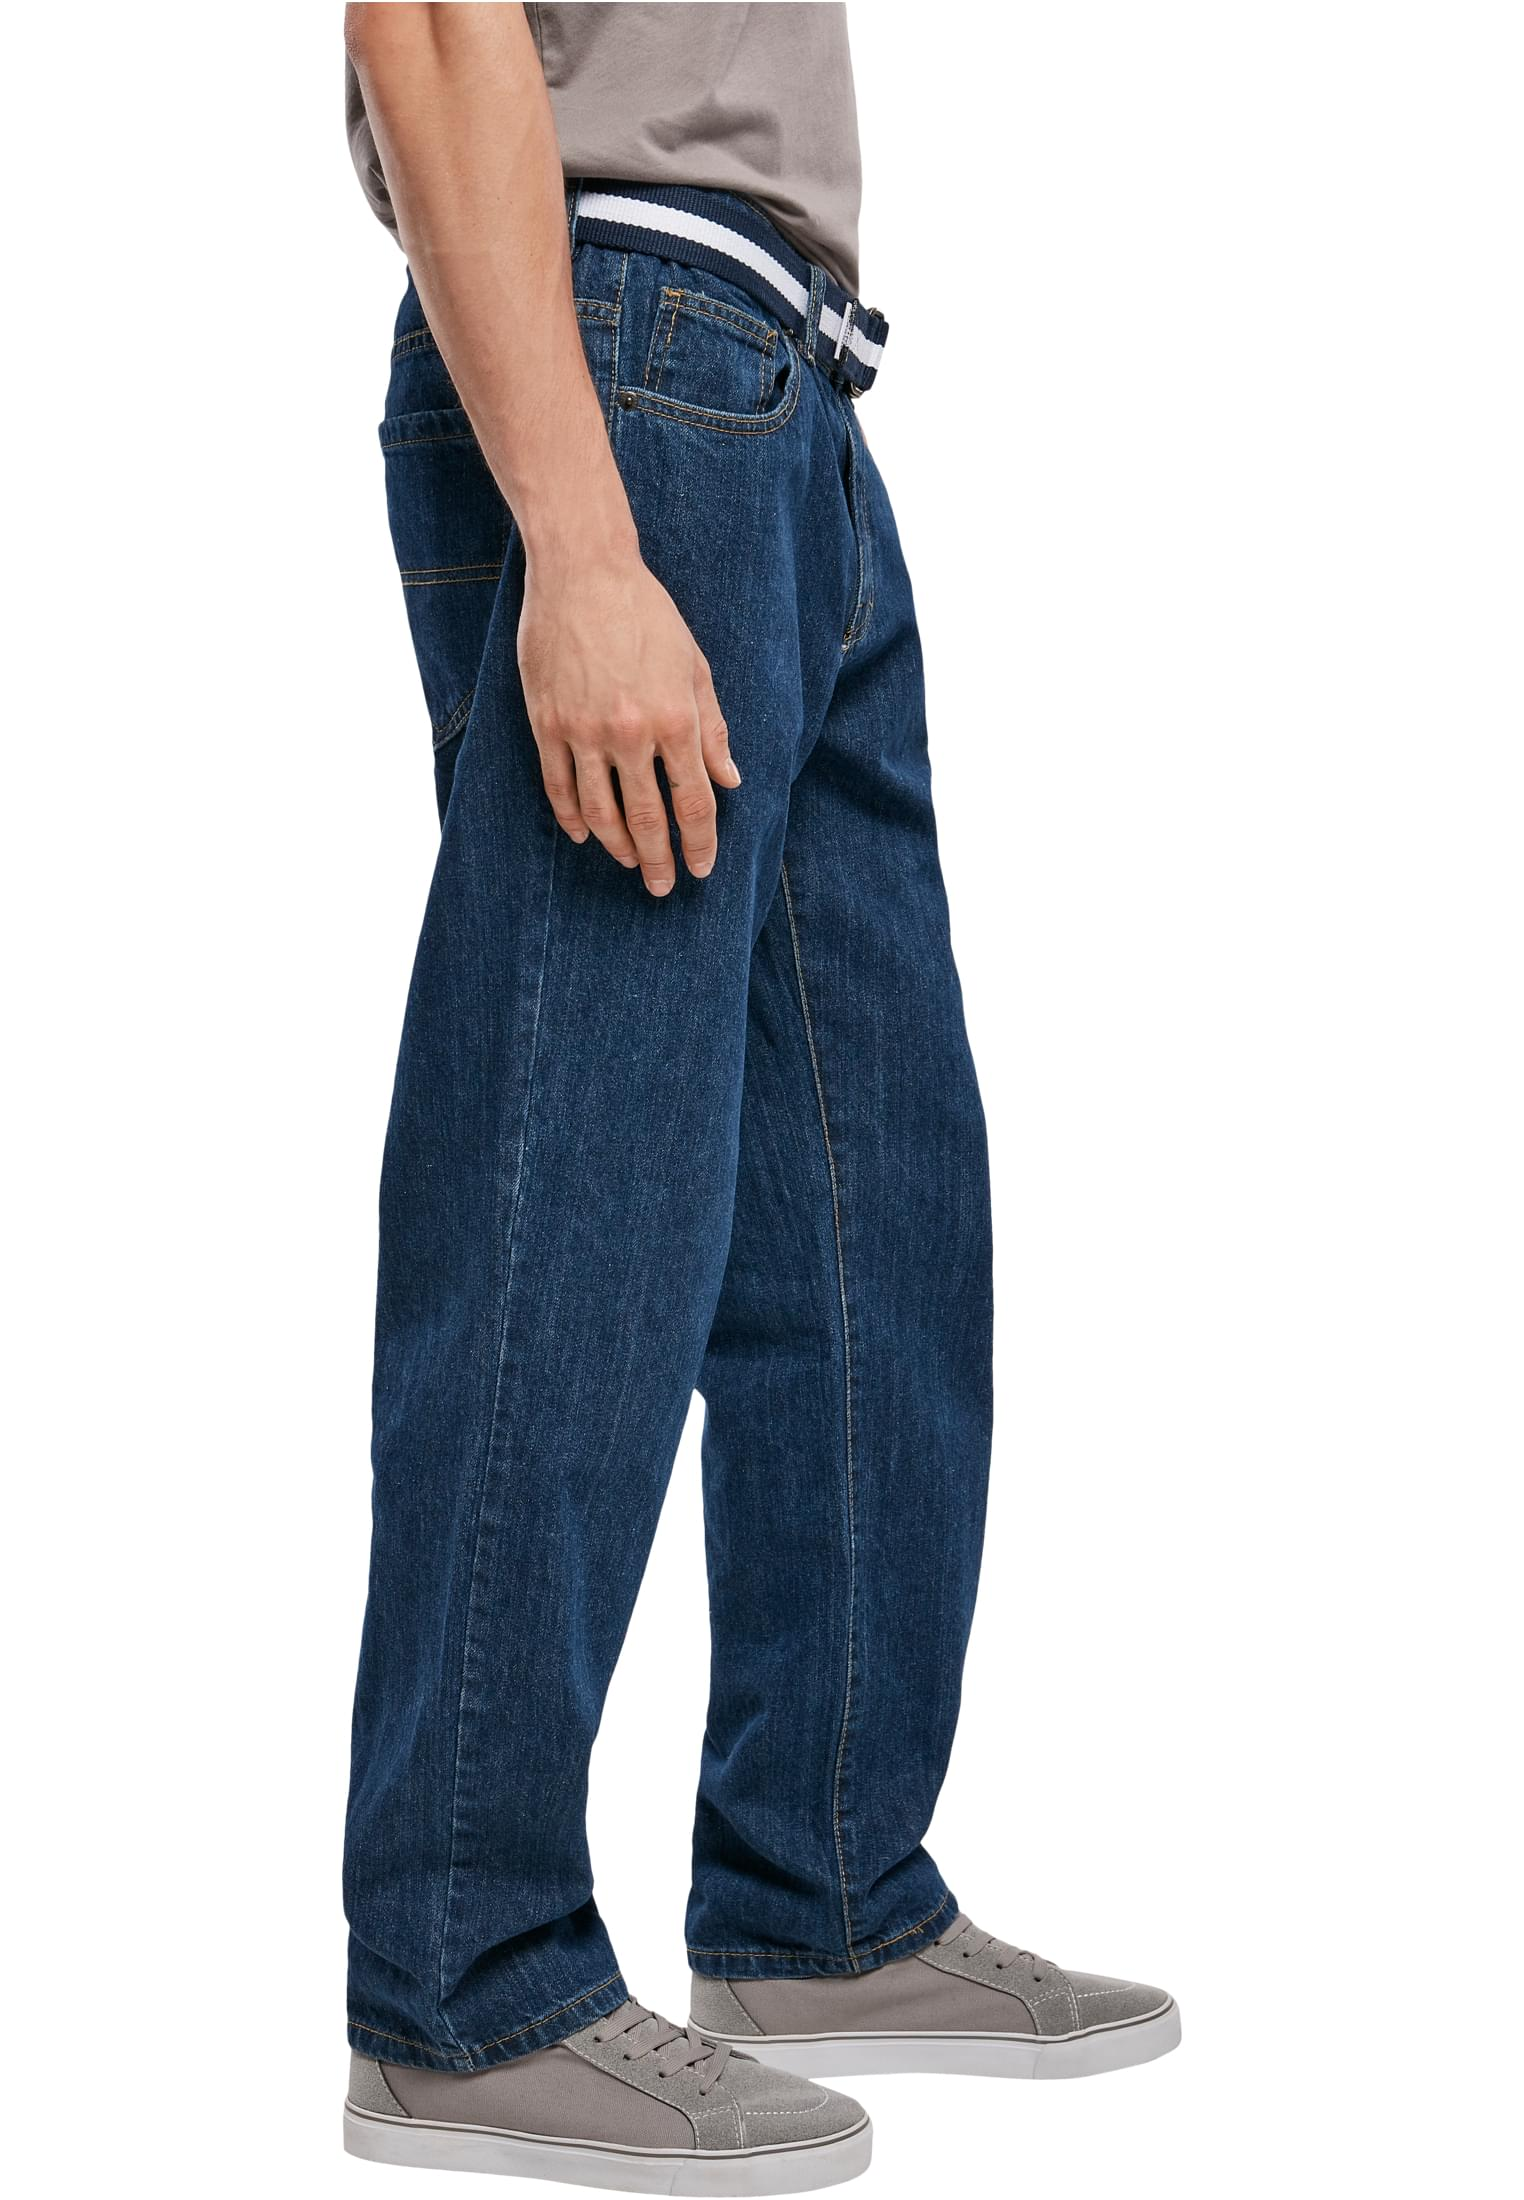 Urban Classics Relaxed Fit Jeans Regular Loose Fit gerades Bein Hose Stretch